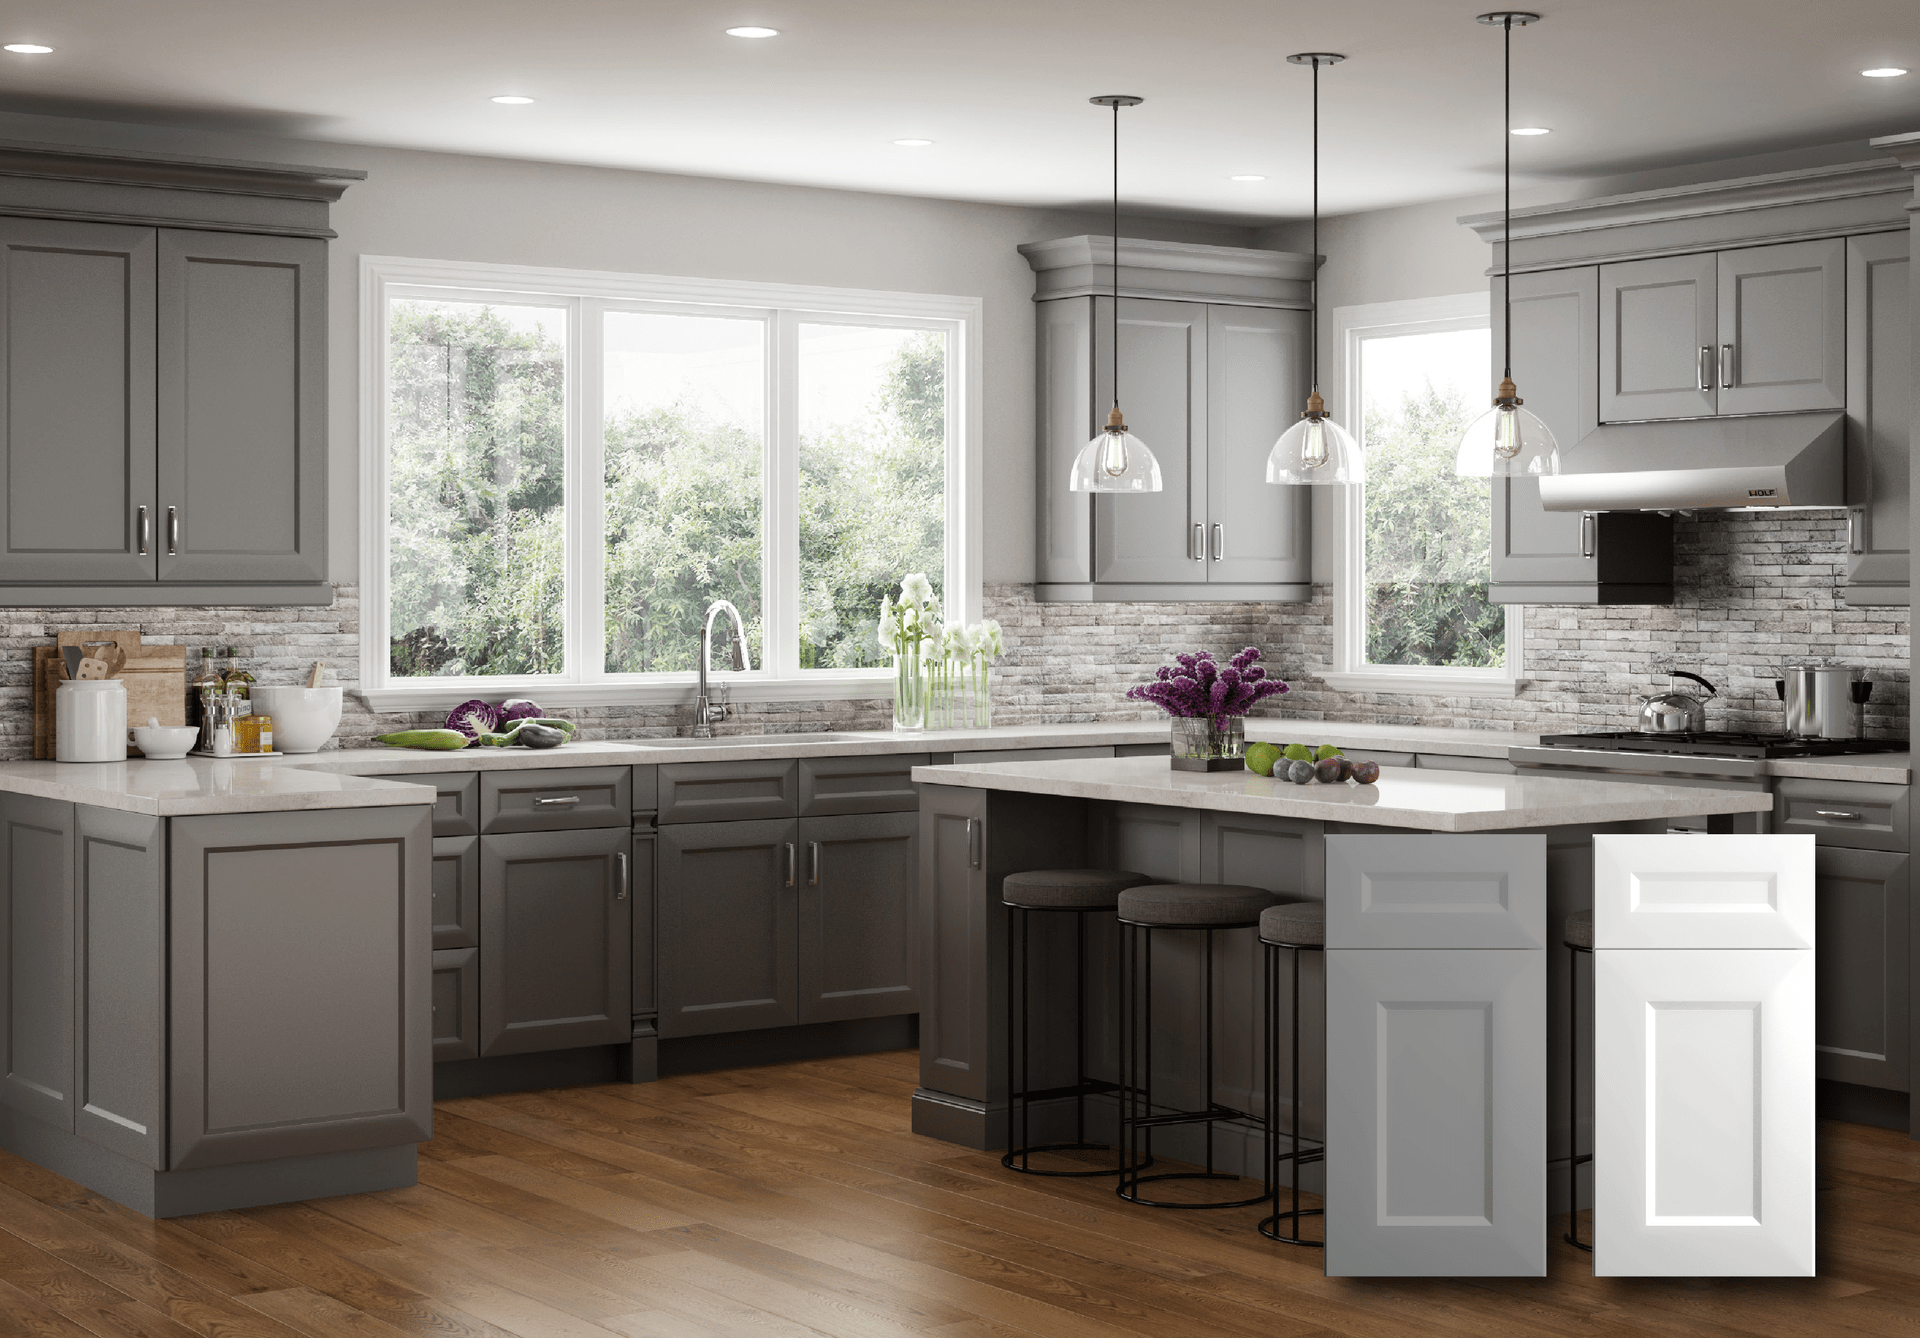 Contemporary Kitchen Cabinets | For Residential Pros on Images Of Modern Kitchens  id=97955